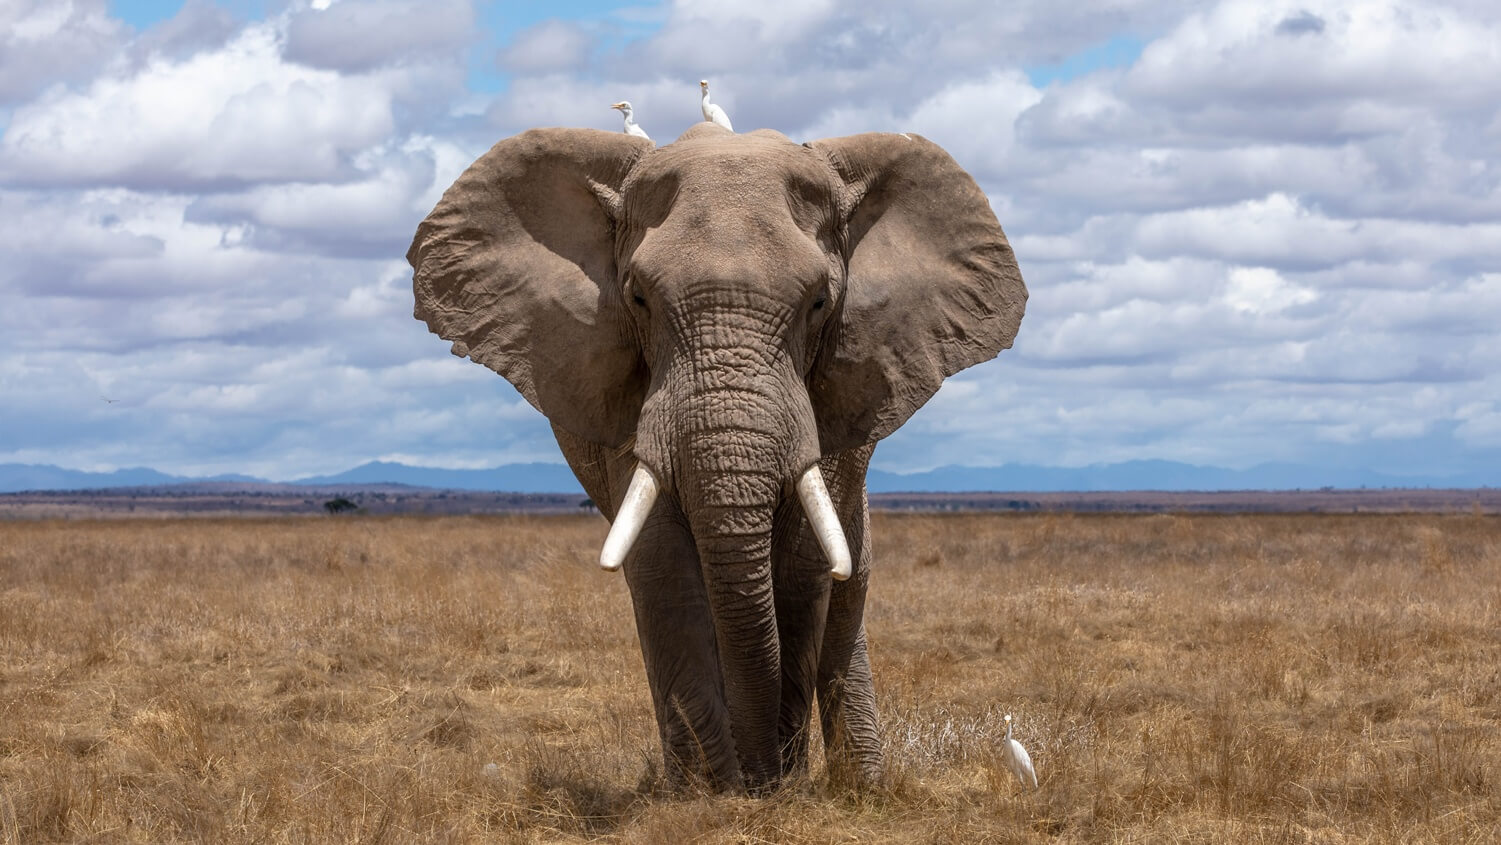 Elephants Are 'Meat' Under Proposed South Africa Legislation